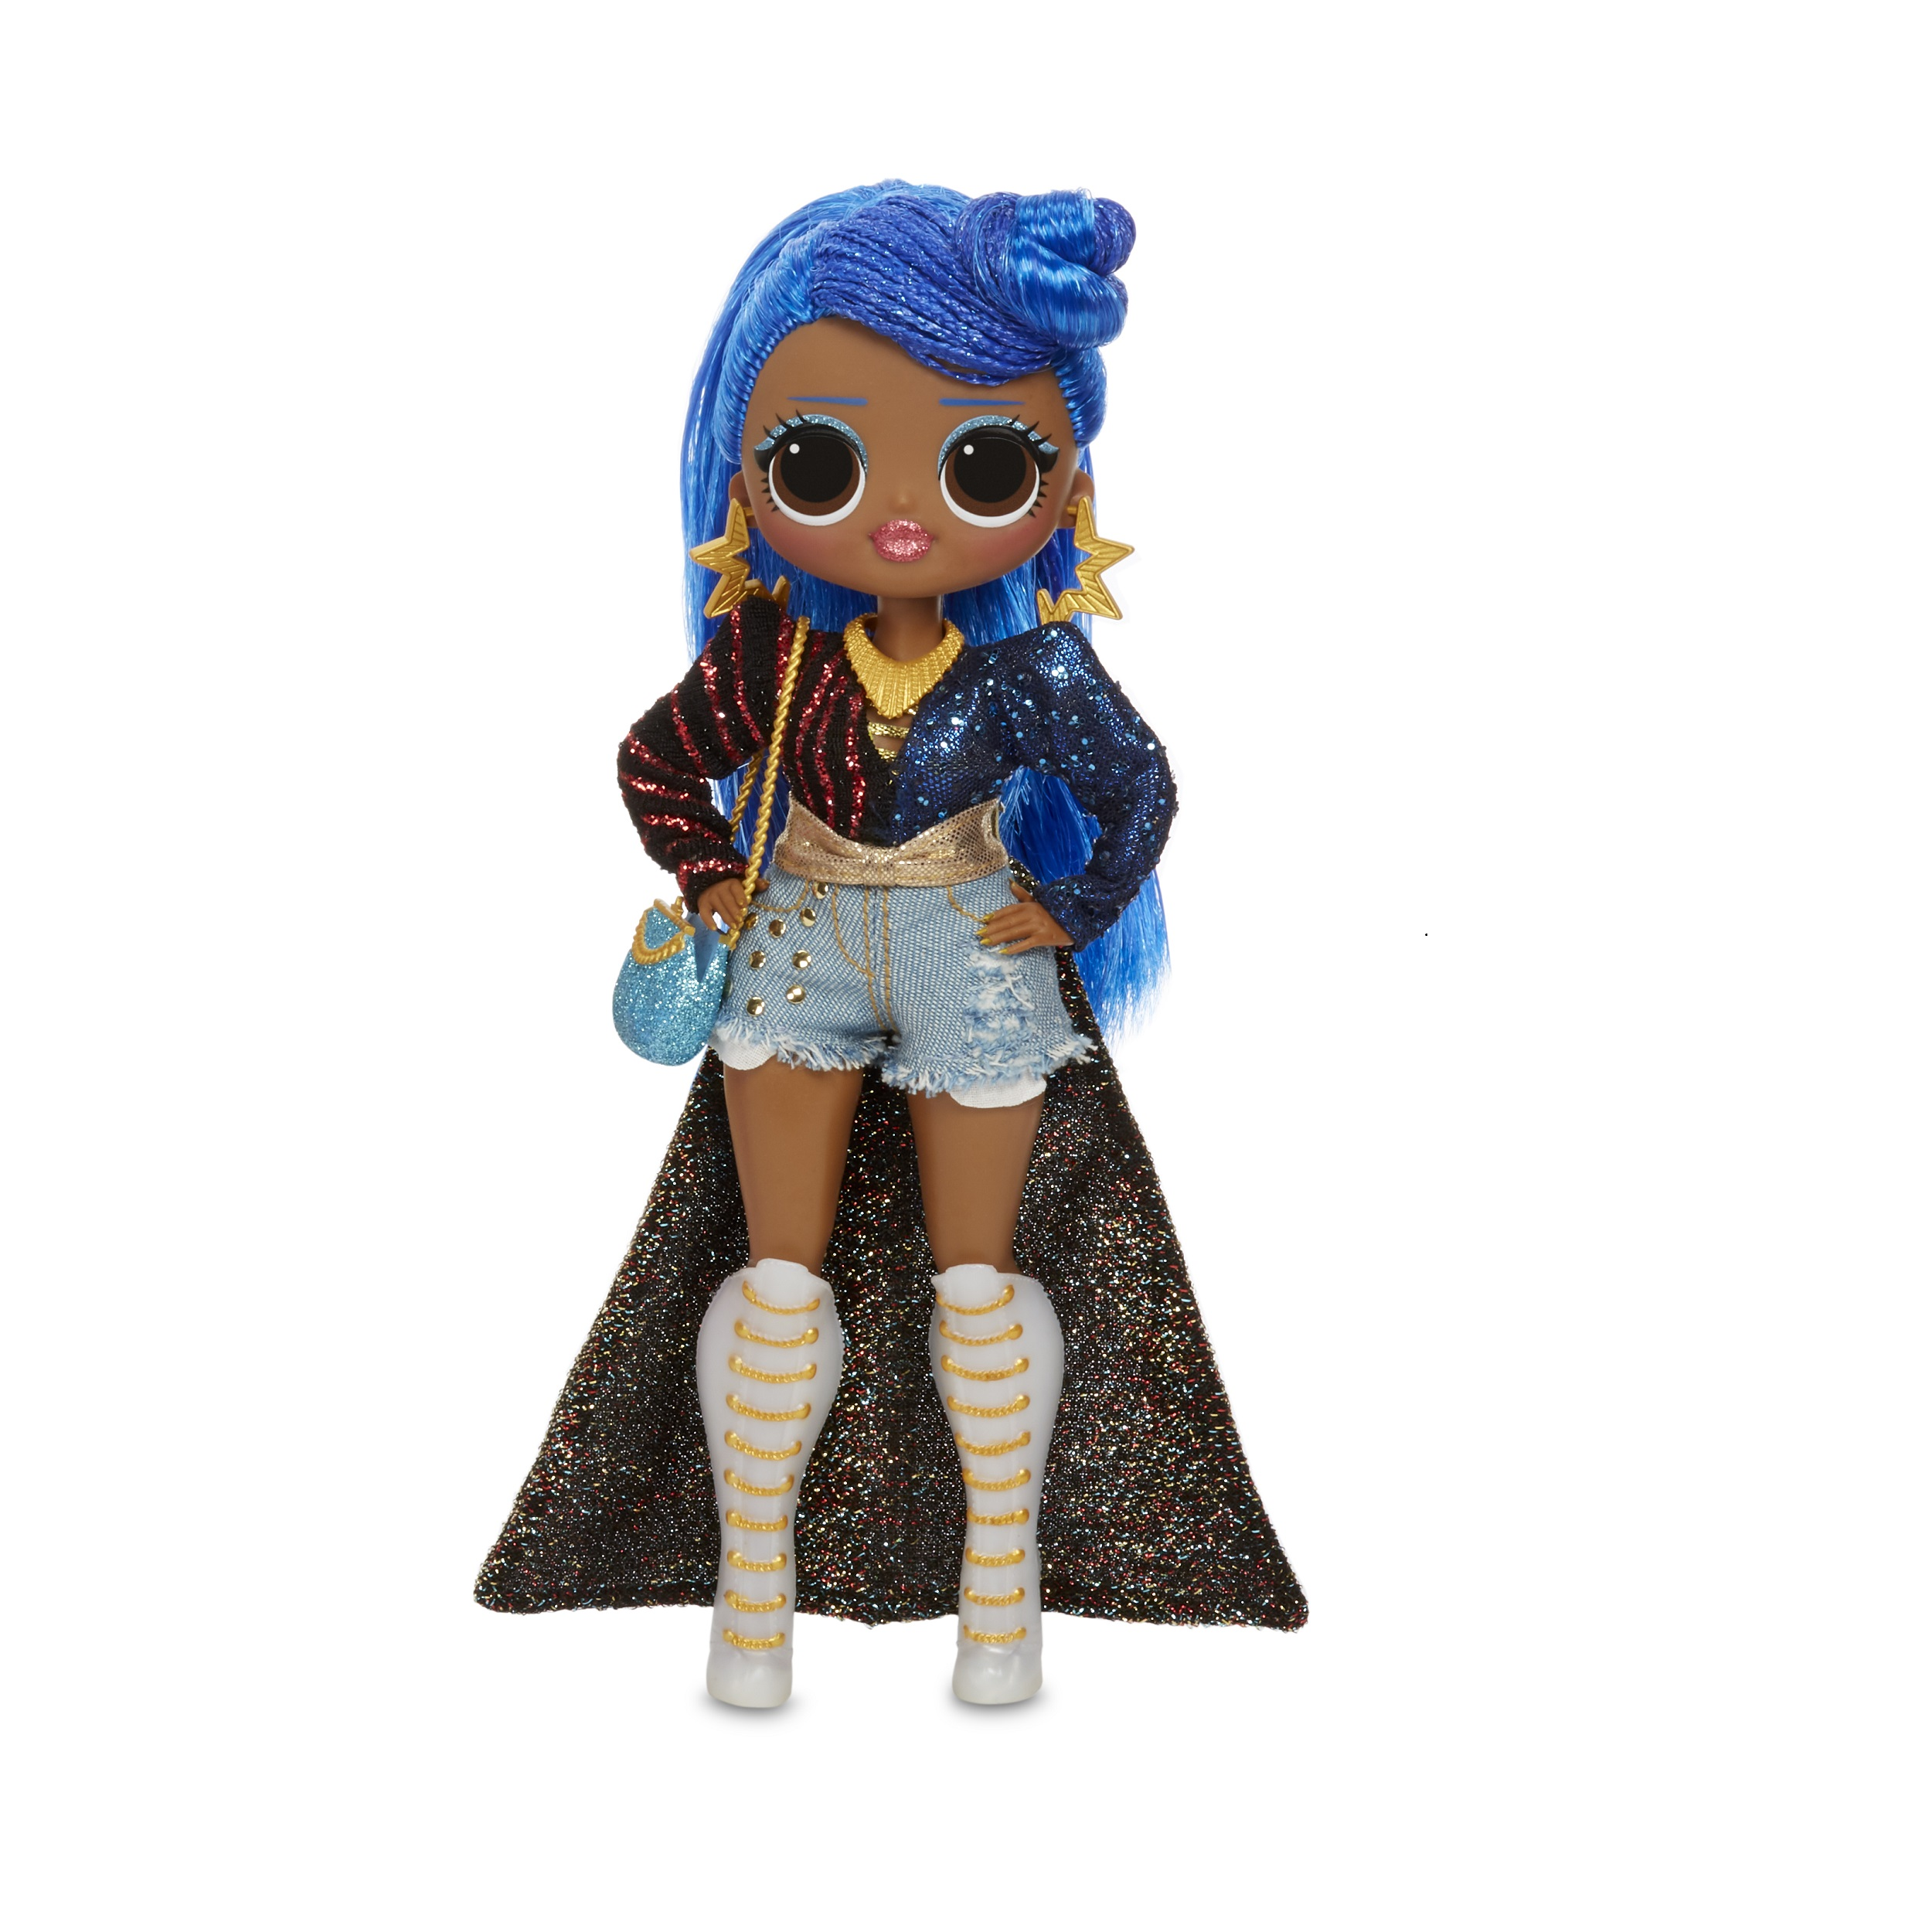 L O L Surprise O M G Miss Independent Fashion Doll Walmart